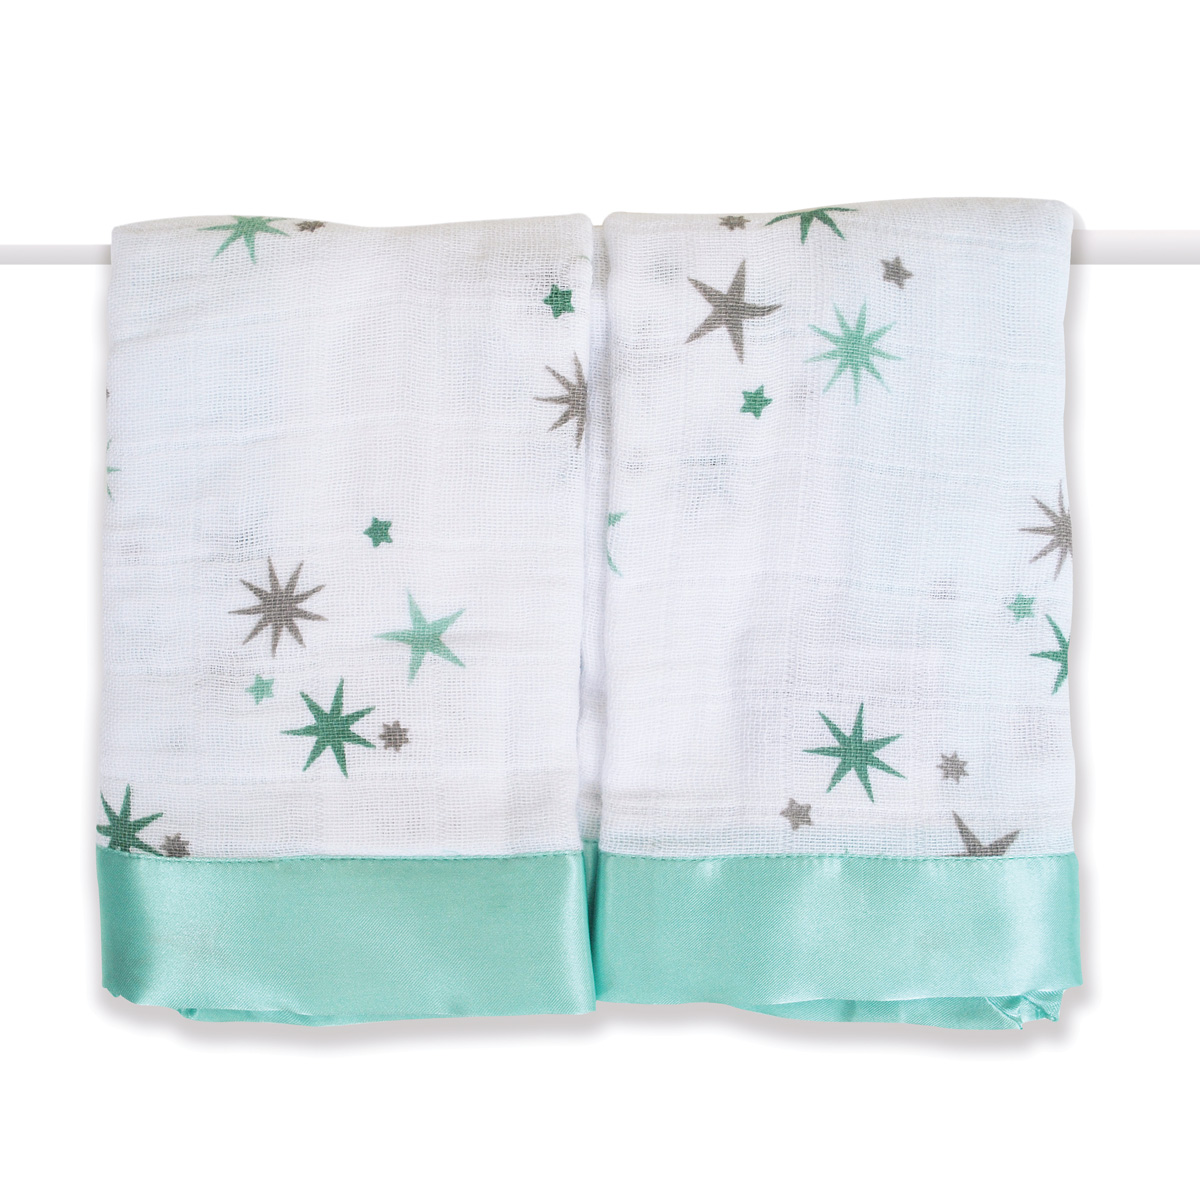 Aden + anais offers 20% off Classic Dream Blanket Sale via coupon code